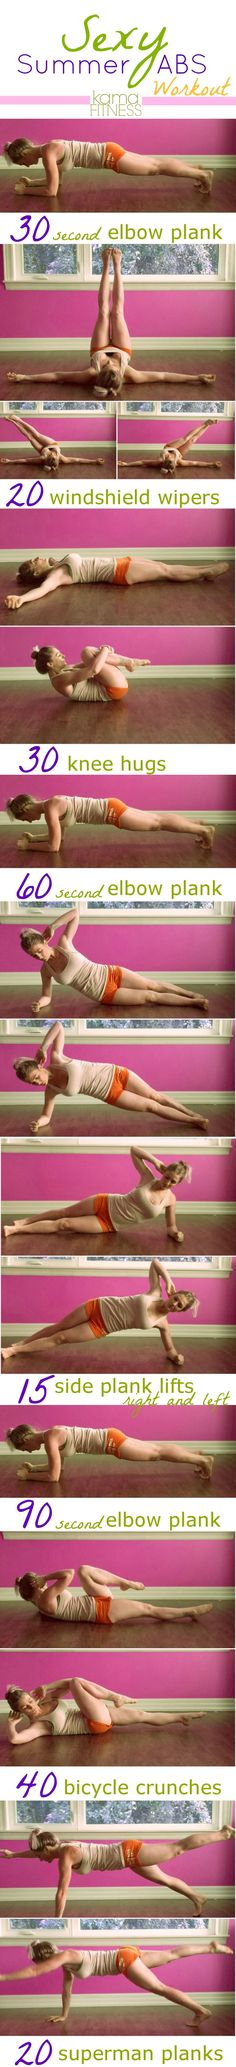 Sexy summer abs workout. #Fitgirlcode #abs #workout